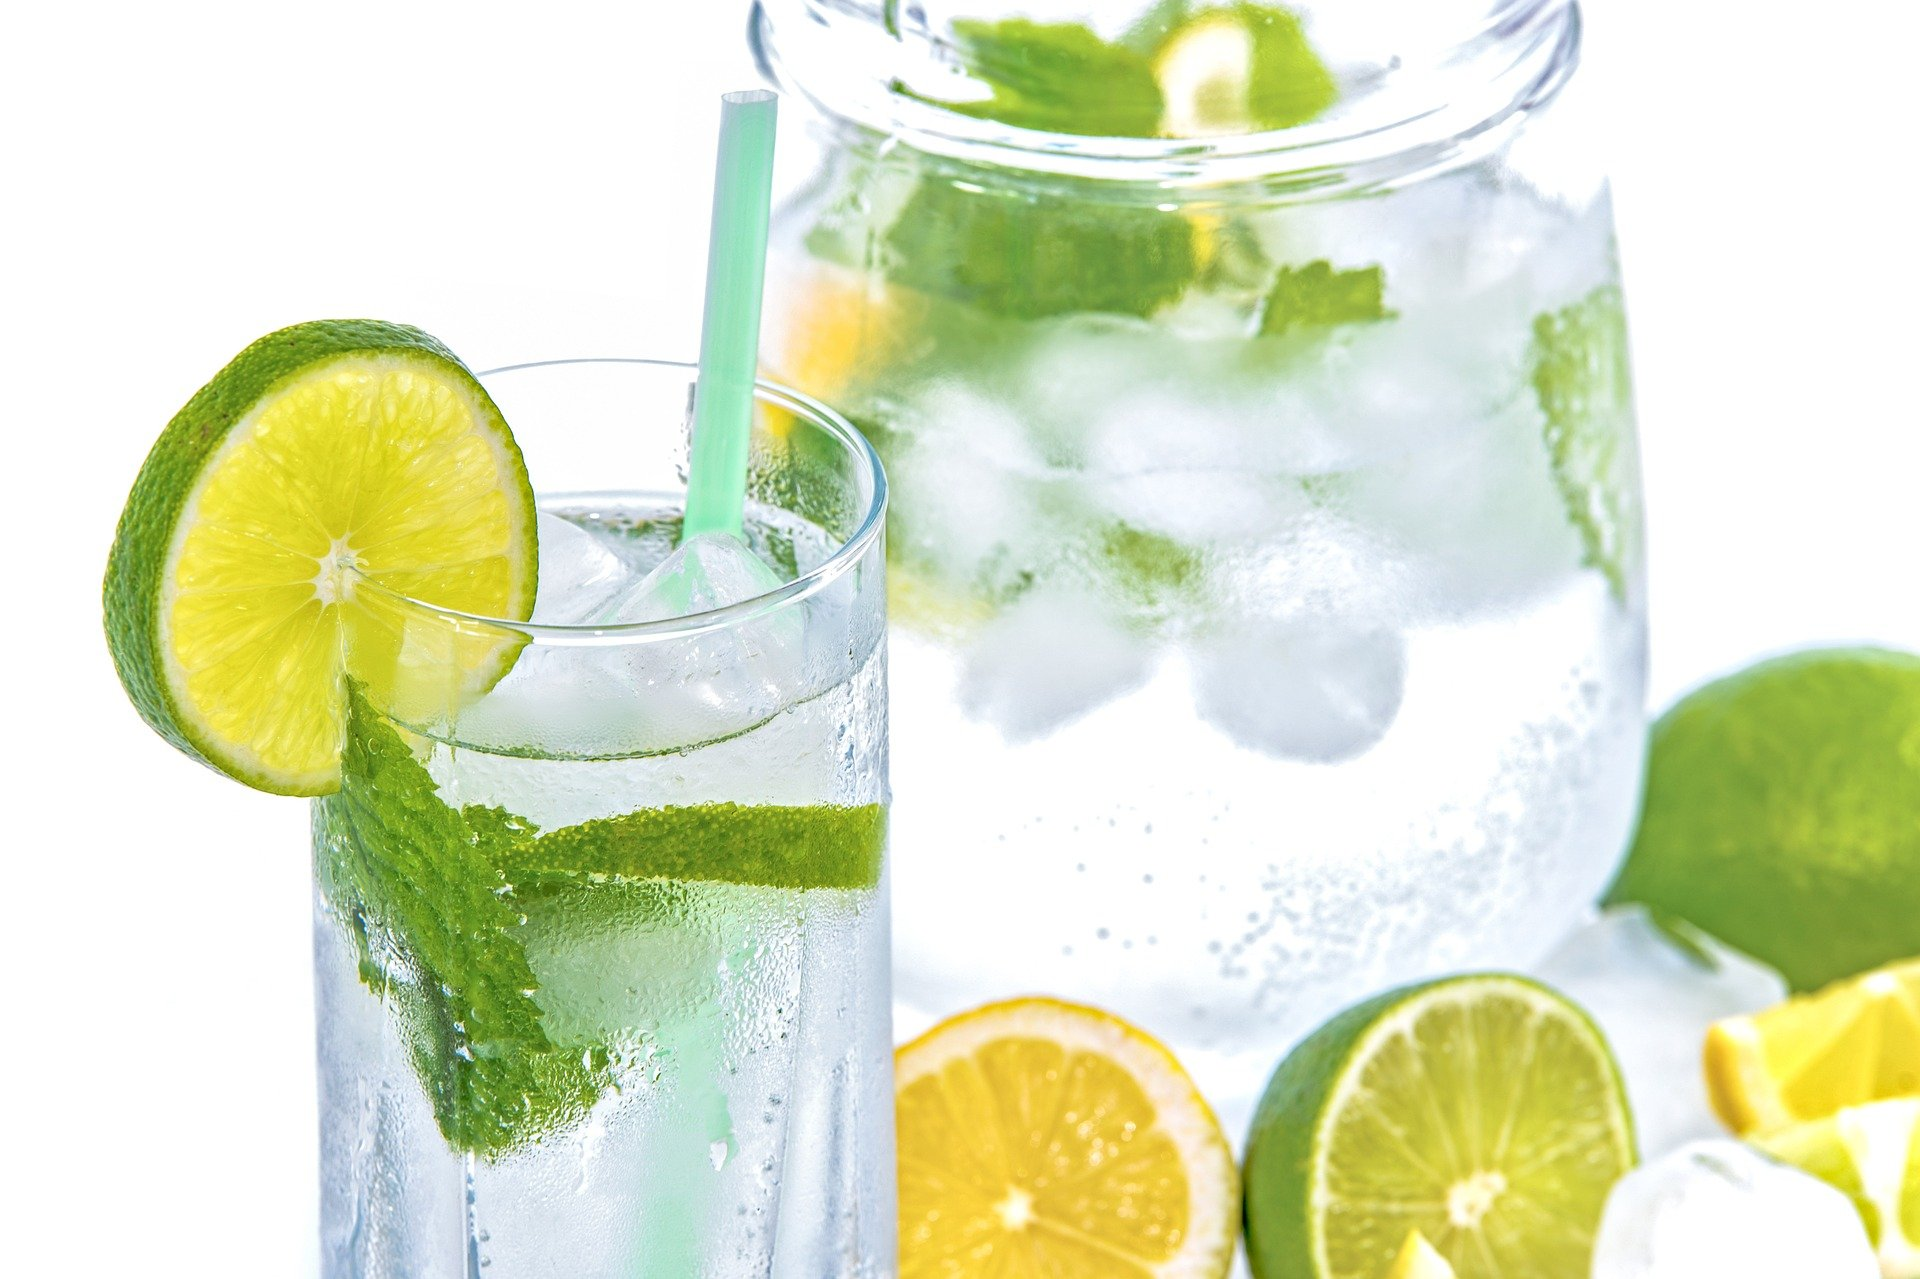 Glass of water with lemons and lime